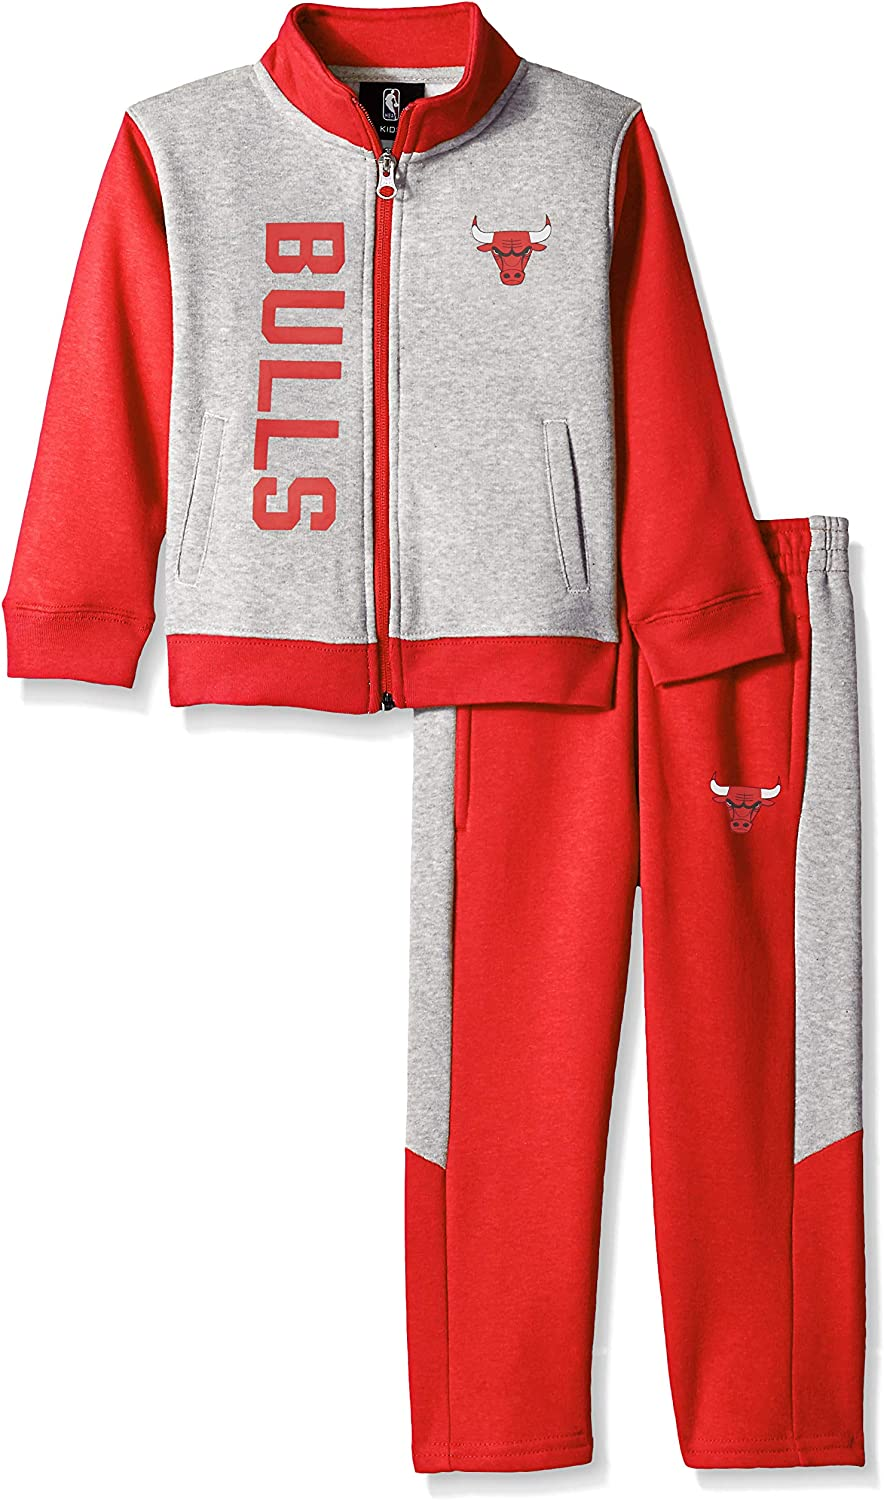 NBA by Outerstuff NBA Toddler On the Line Jacket /& Pants Fleece Set